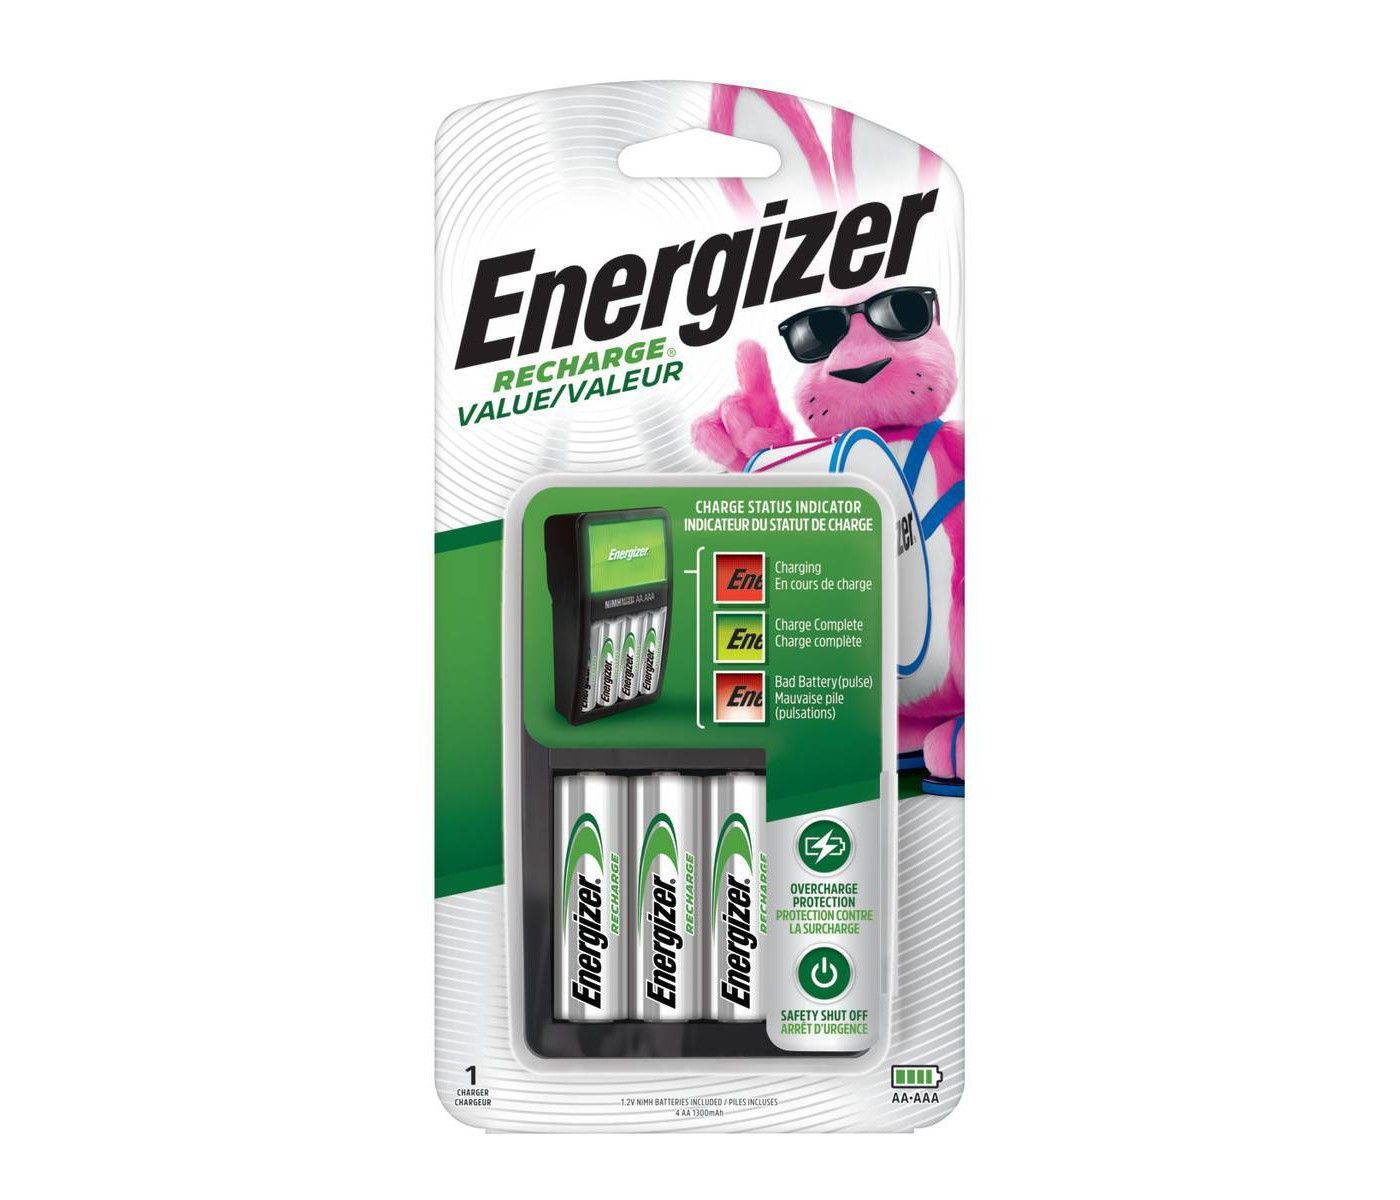 The Best Rechargeable Battery Charger For Aa And Aaa Batteries Aa Battery Charger Rechargeable Battery Charger Rechargeable Batteries